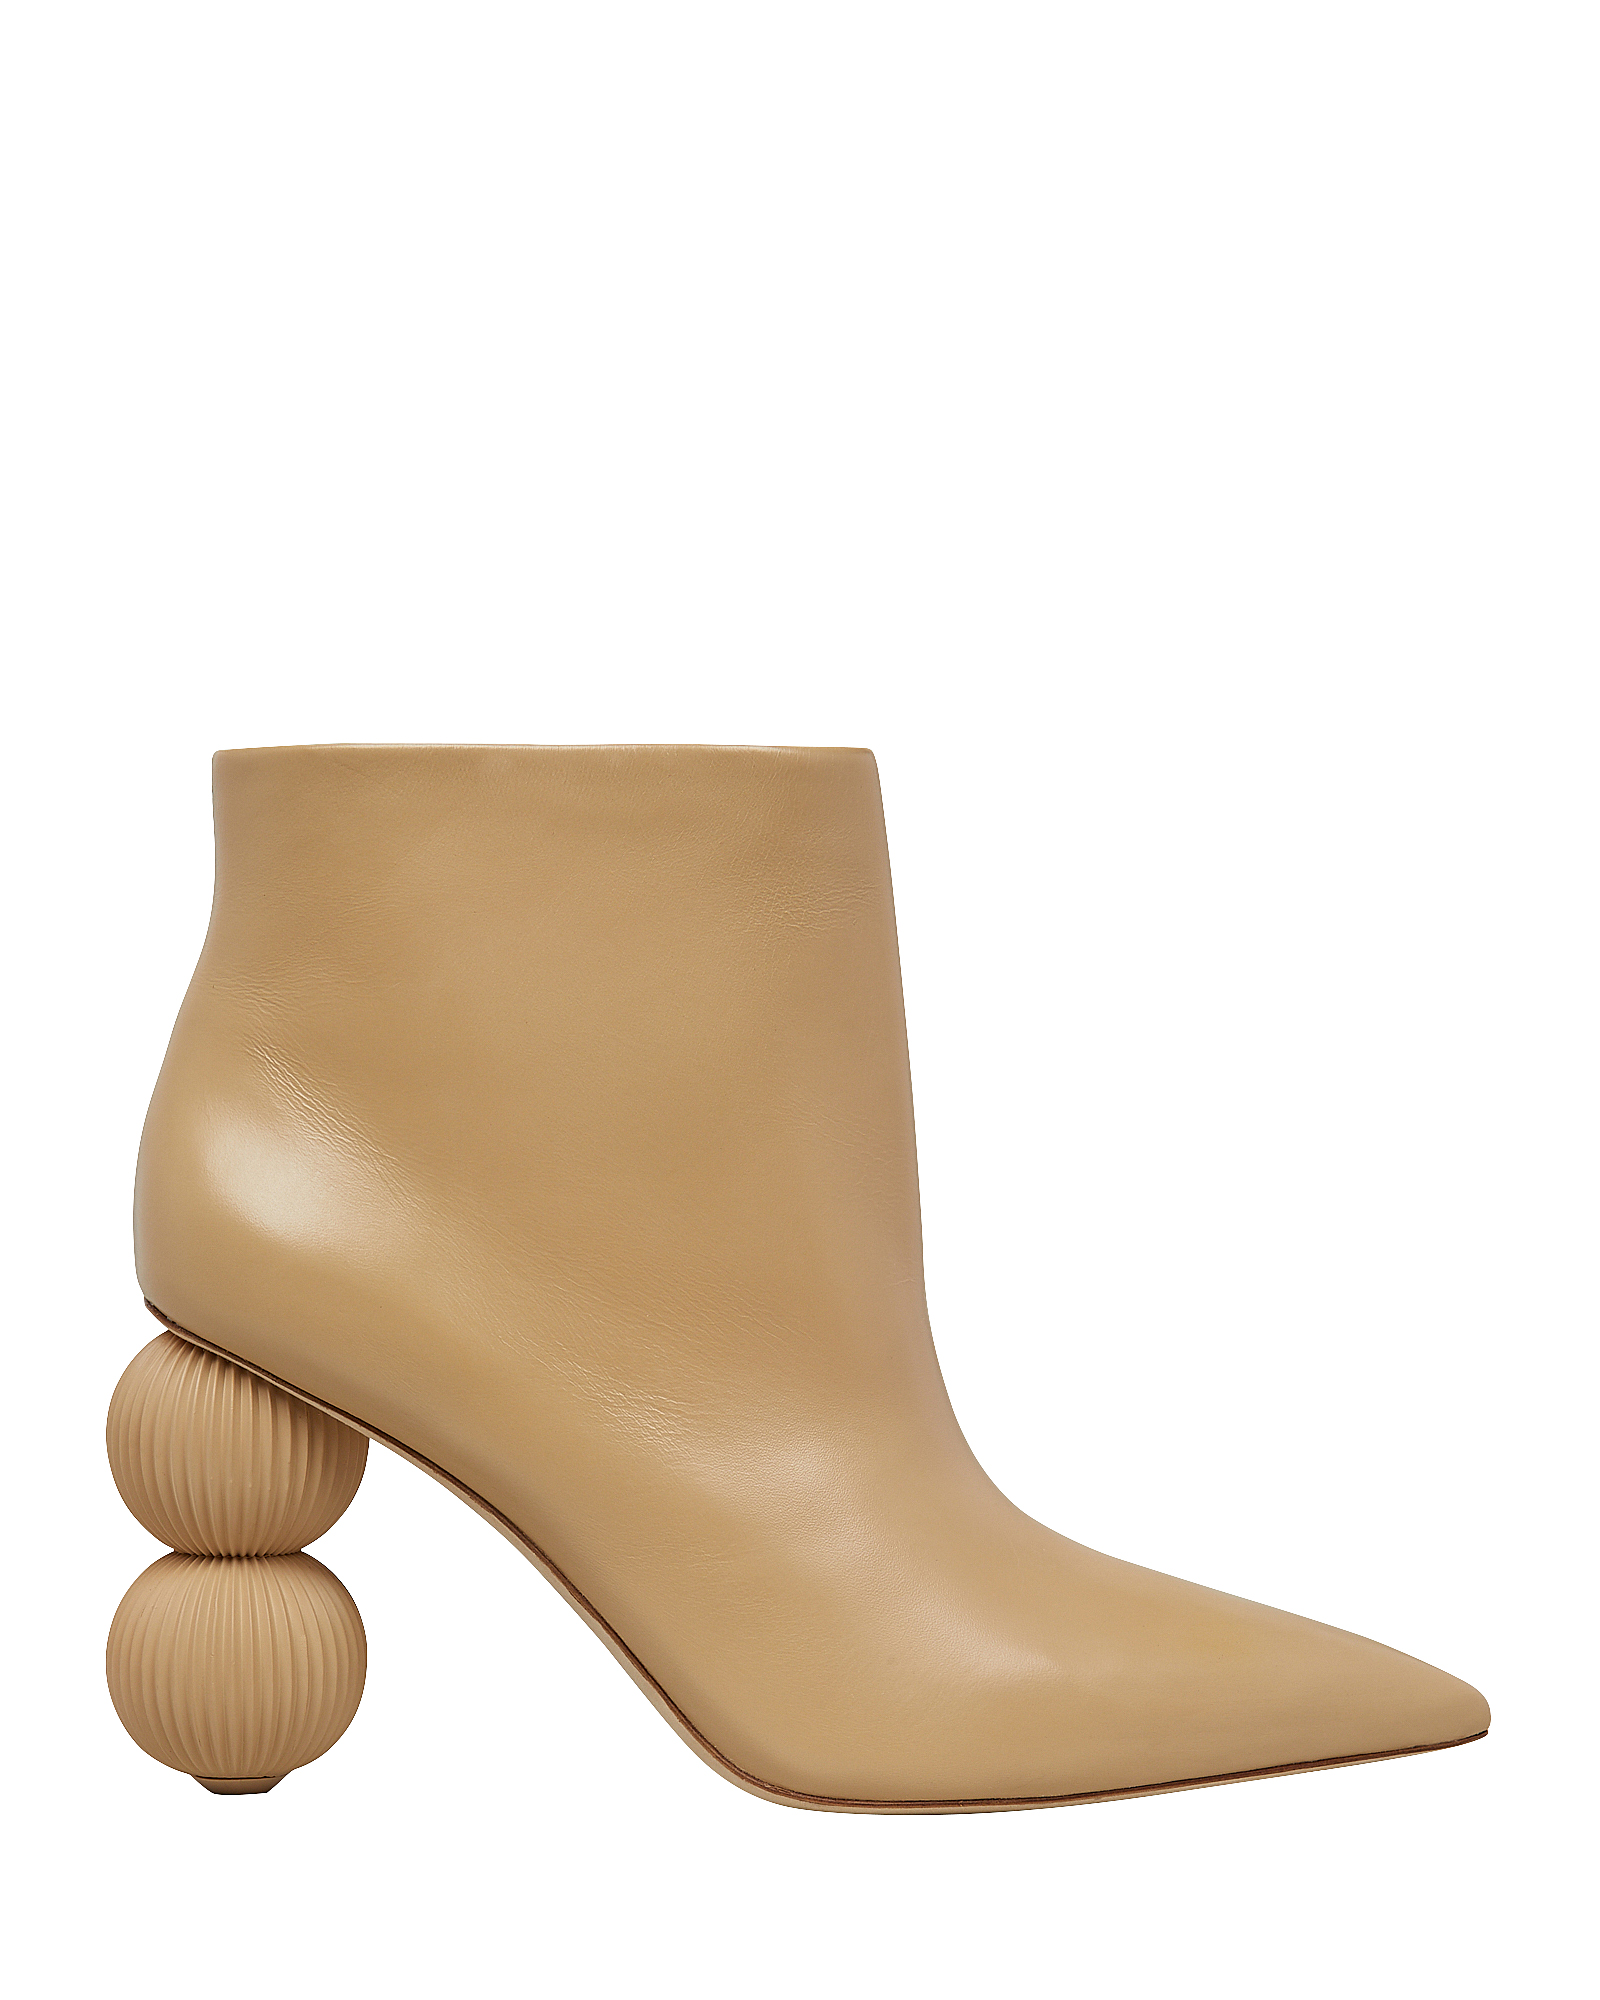 Cult Gaia Boots CULT GAIA CAM DOUBLE CIRCLE HEEL BOOTIES